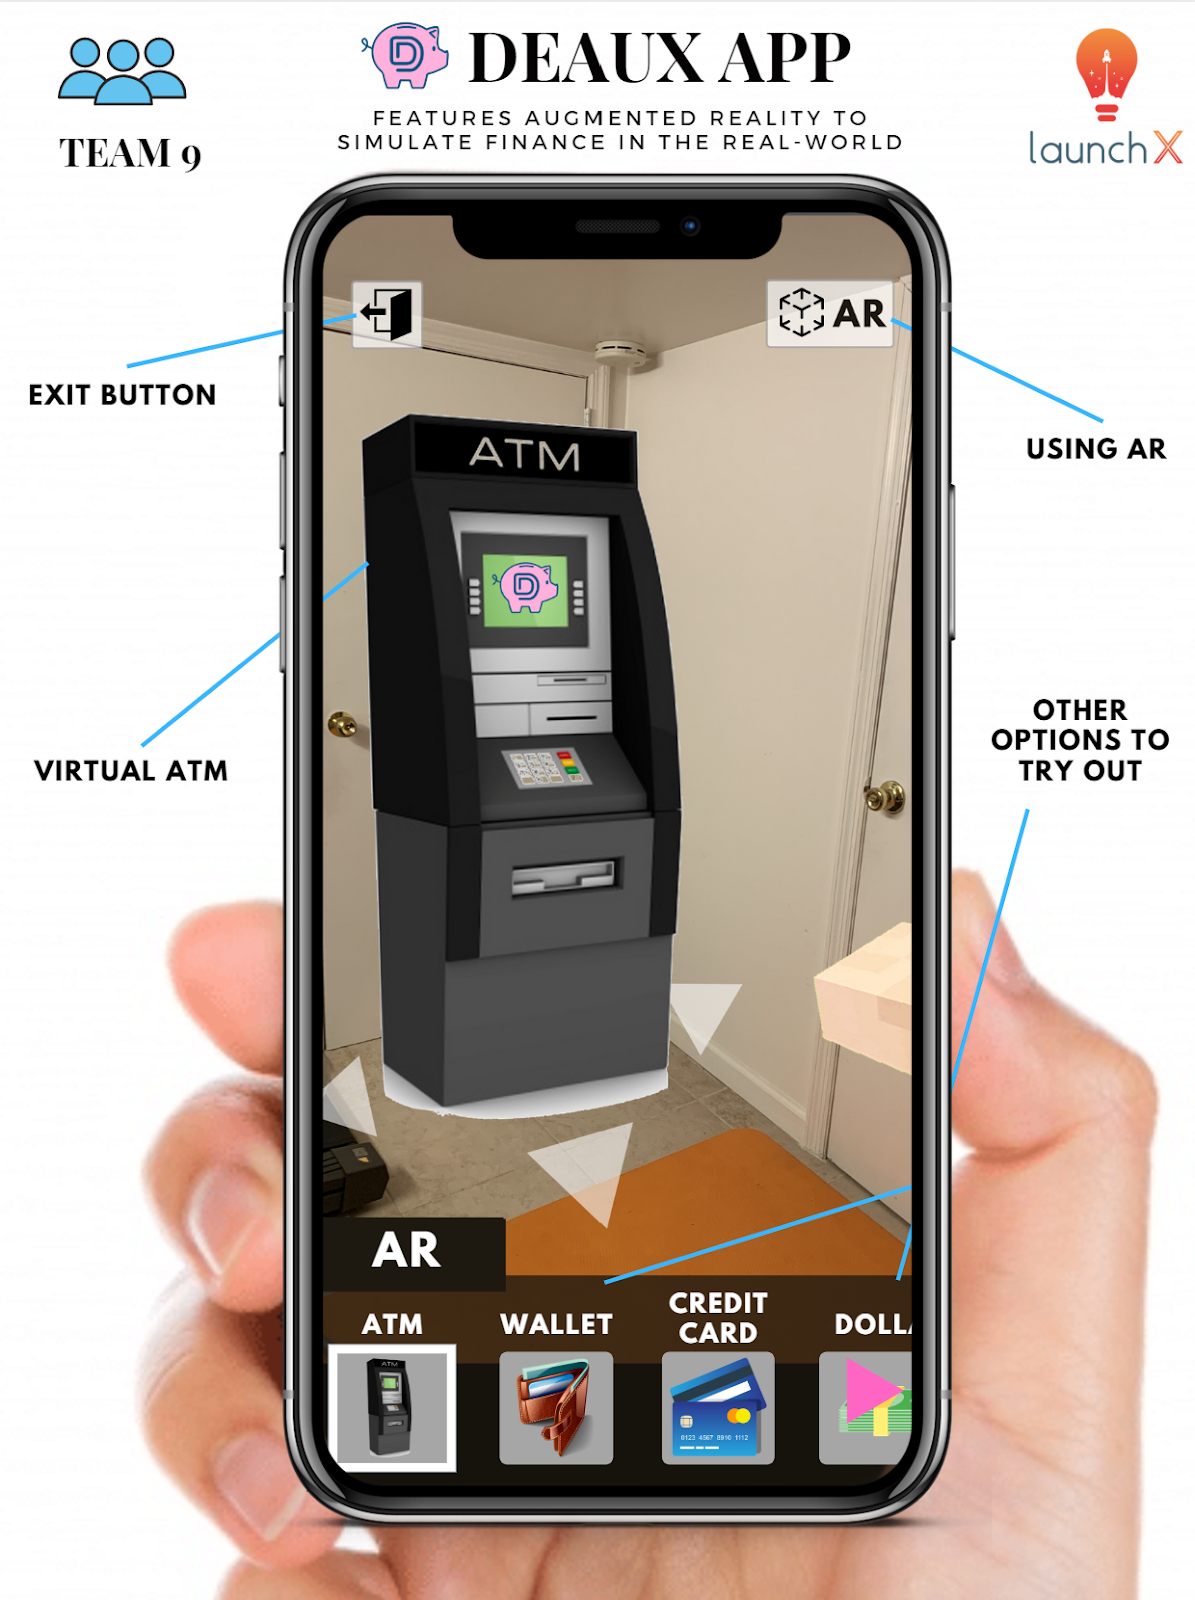 A mockup of the Deaux app, displaying a virtual ATM to teach students about banking.